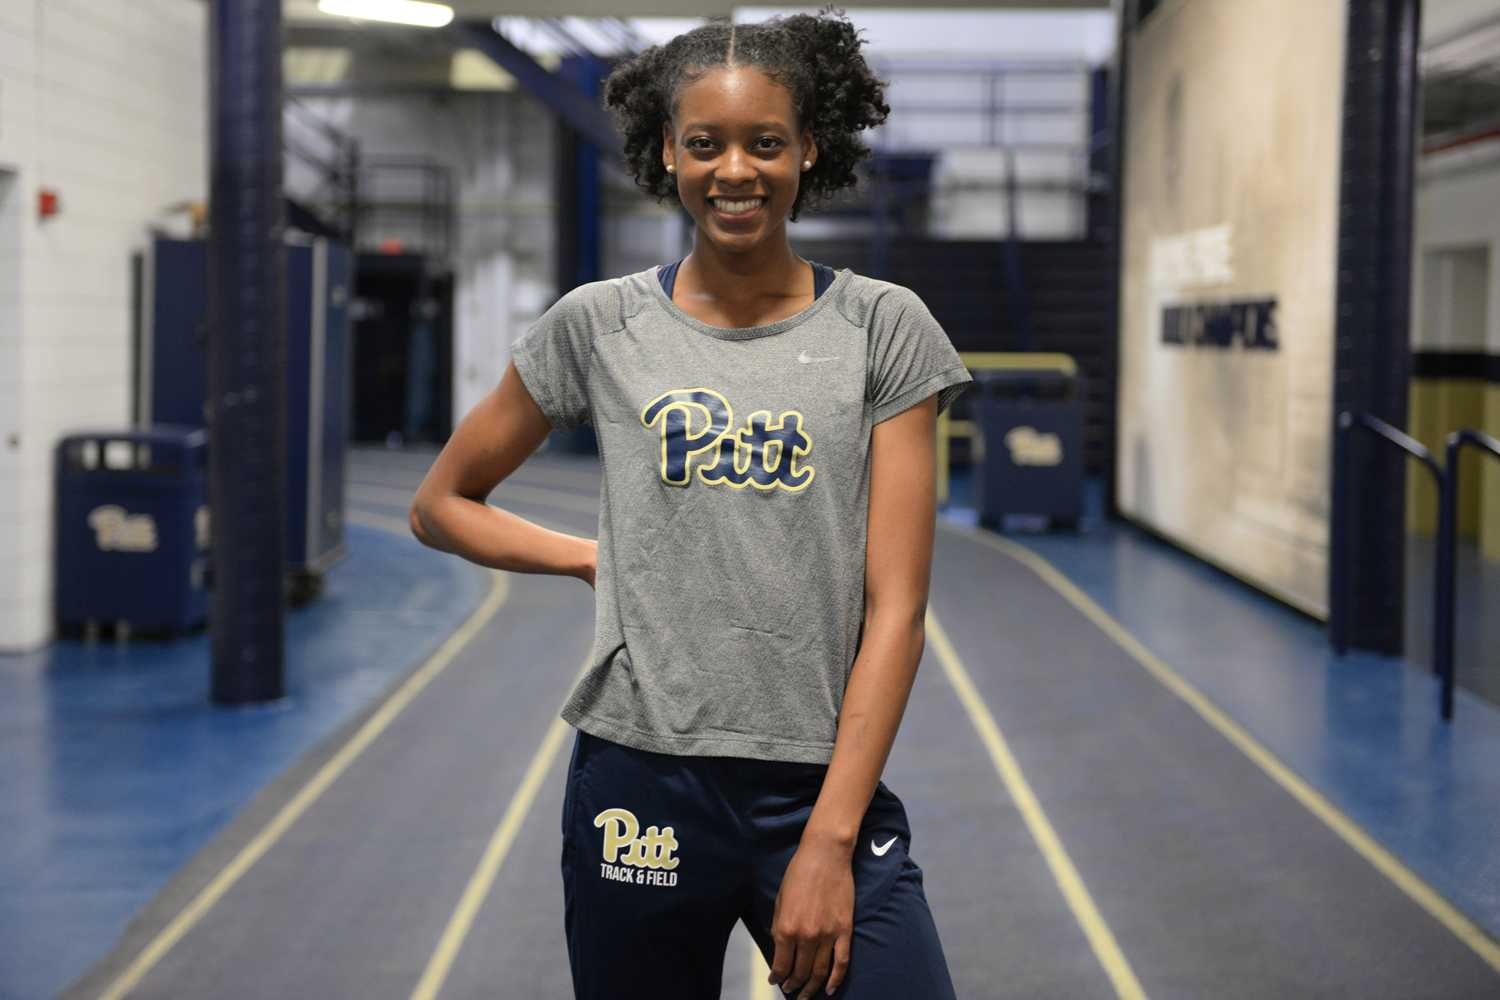 Senior Desiree Garland claimed Pitt's first gold medal in the 400-meter run at the ACC Indoor Championships this fall (Photo by Divyanka Bhatia | Staff Photographer)